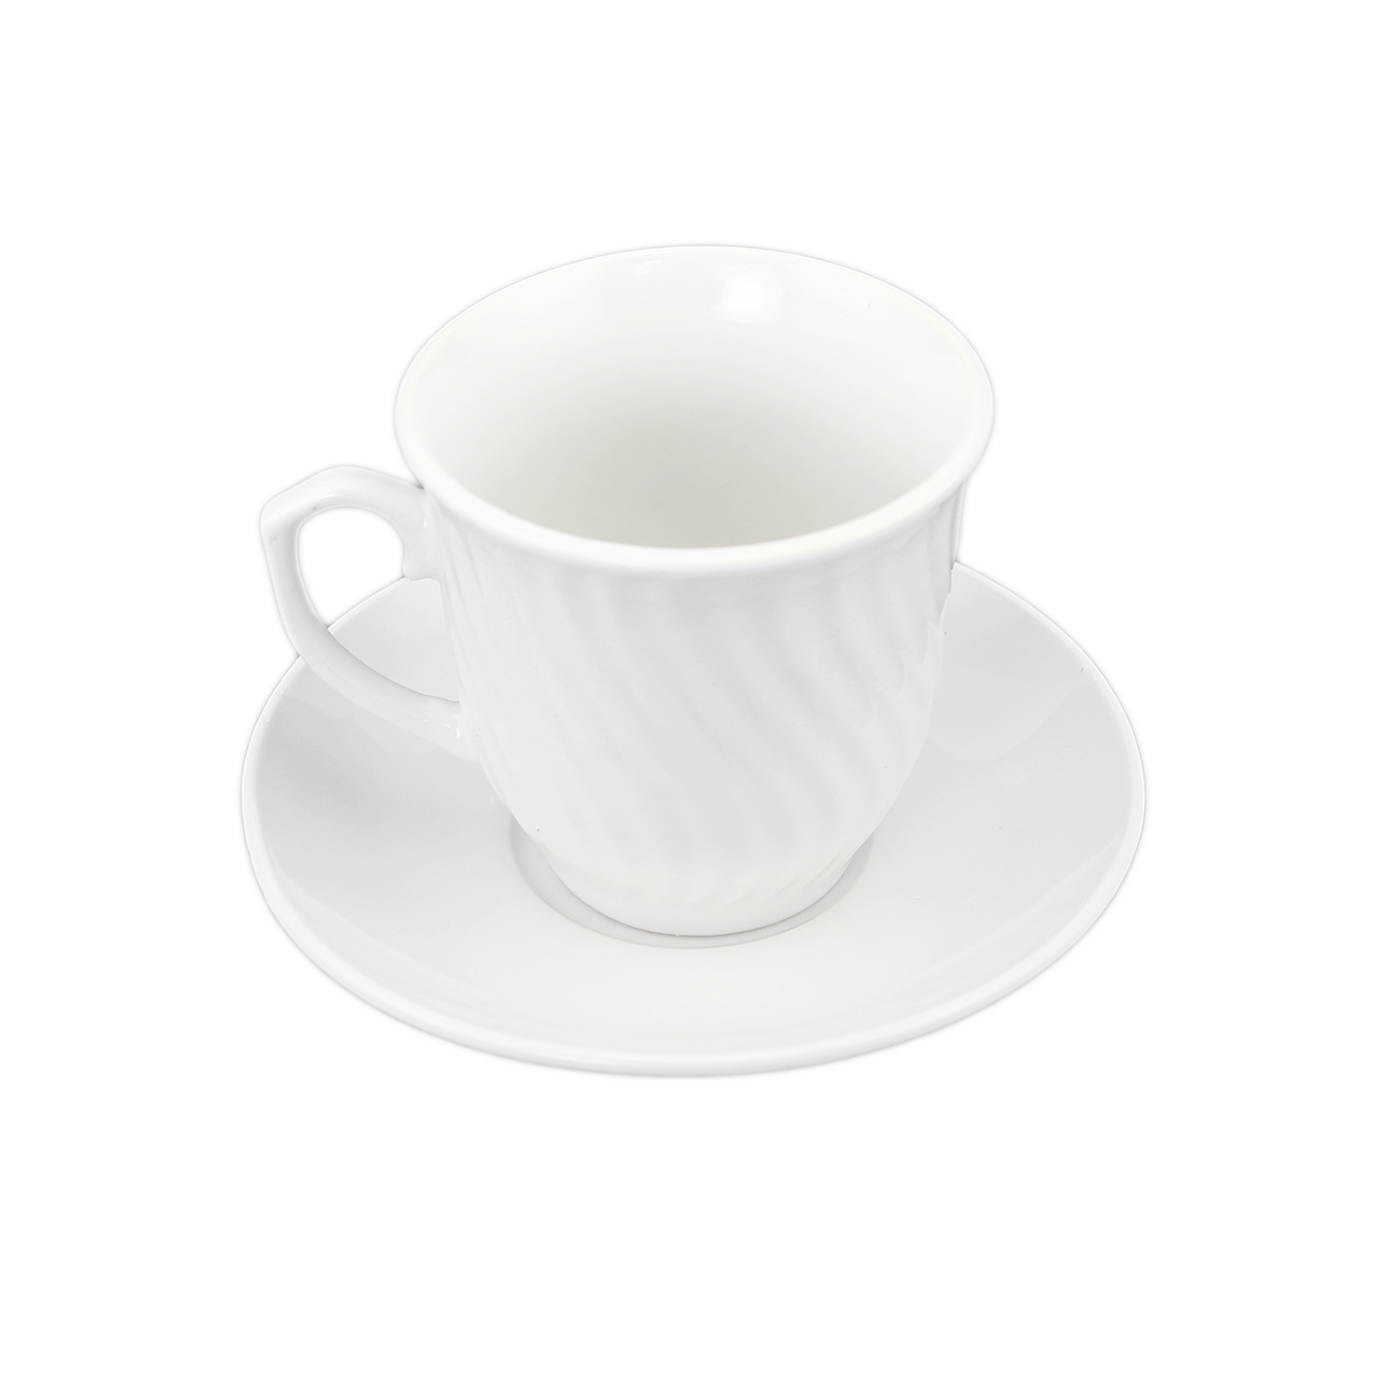 White Ceramic Coffee Cups Set Of White Porcelain 6 Coffee Cups And 6 Saucers Wave